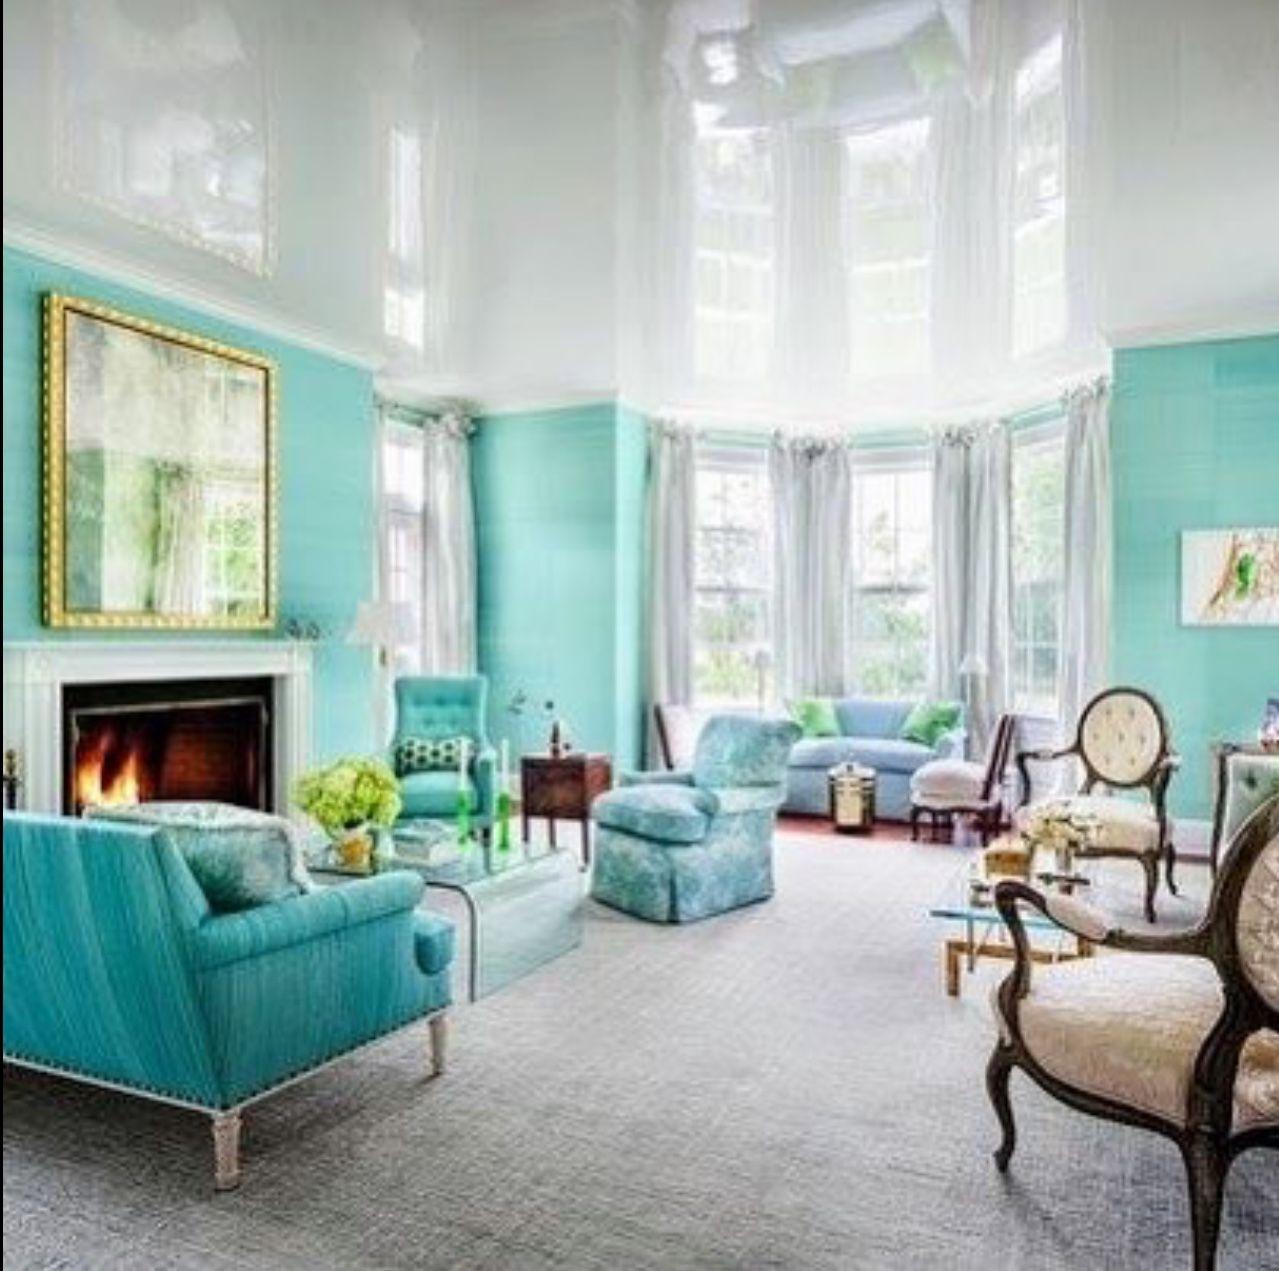 pin by larry johnson on ceiling ideas living room on living room color inspiration id=58013